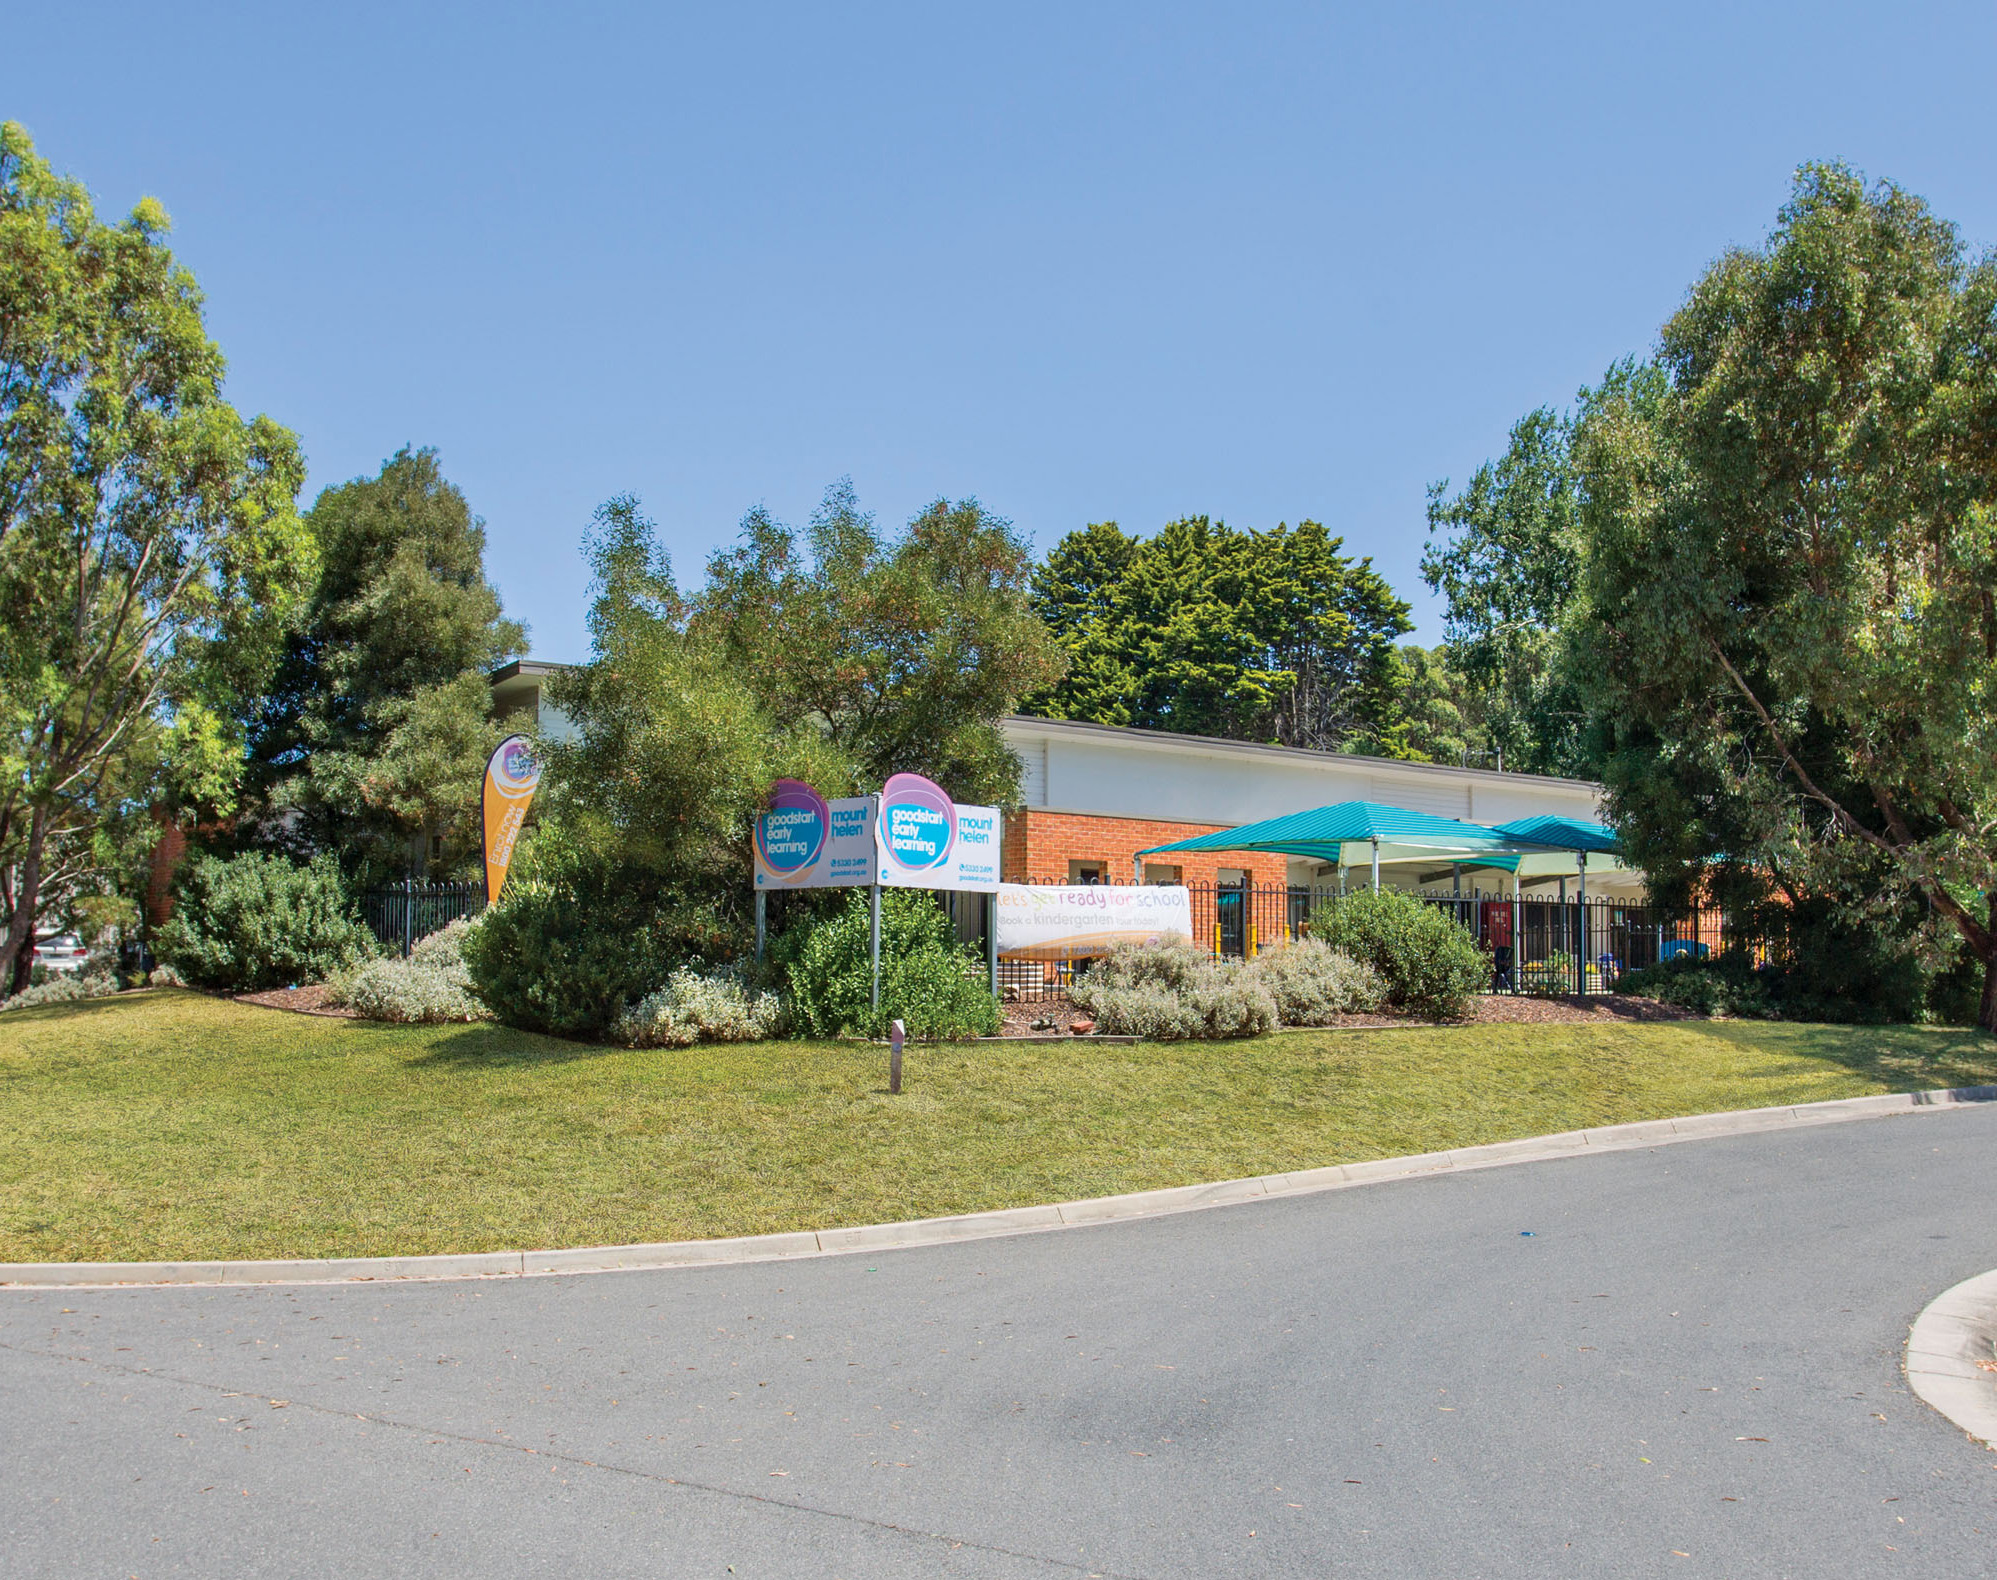 Renewed Lease to Australia's Largest Childcare Provider